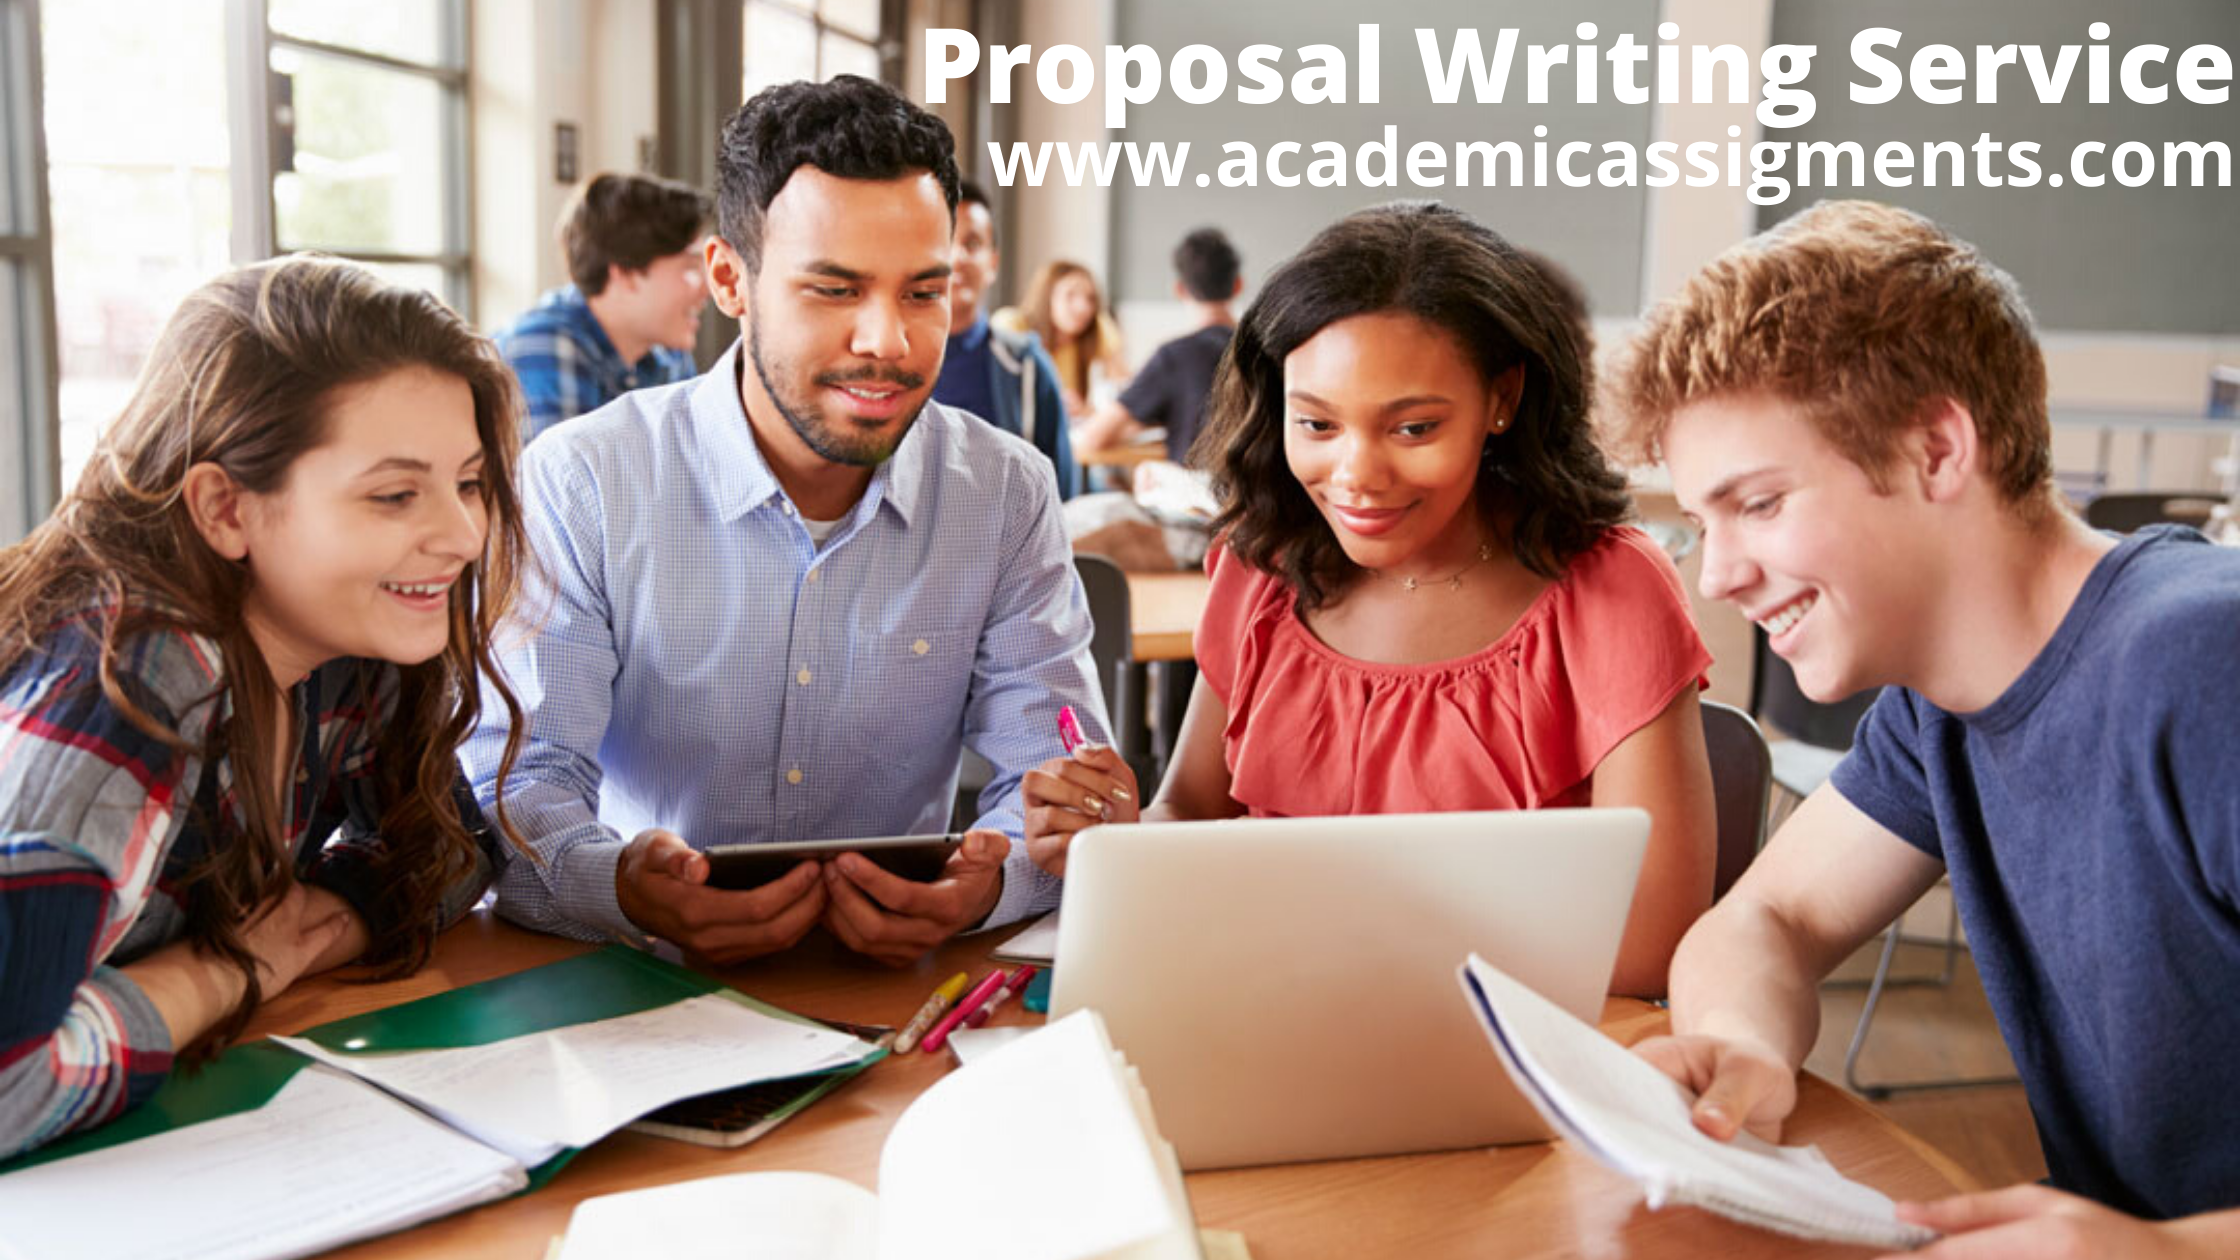 Proposal Writing Service